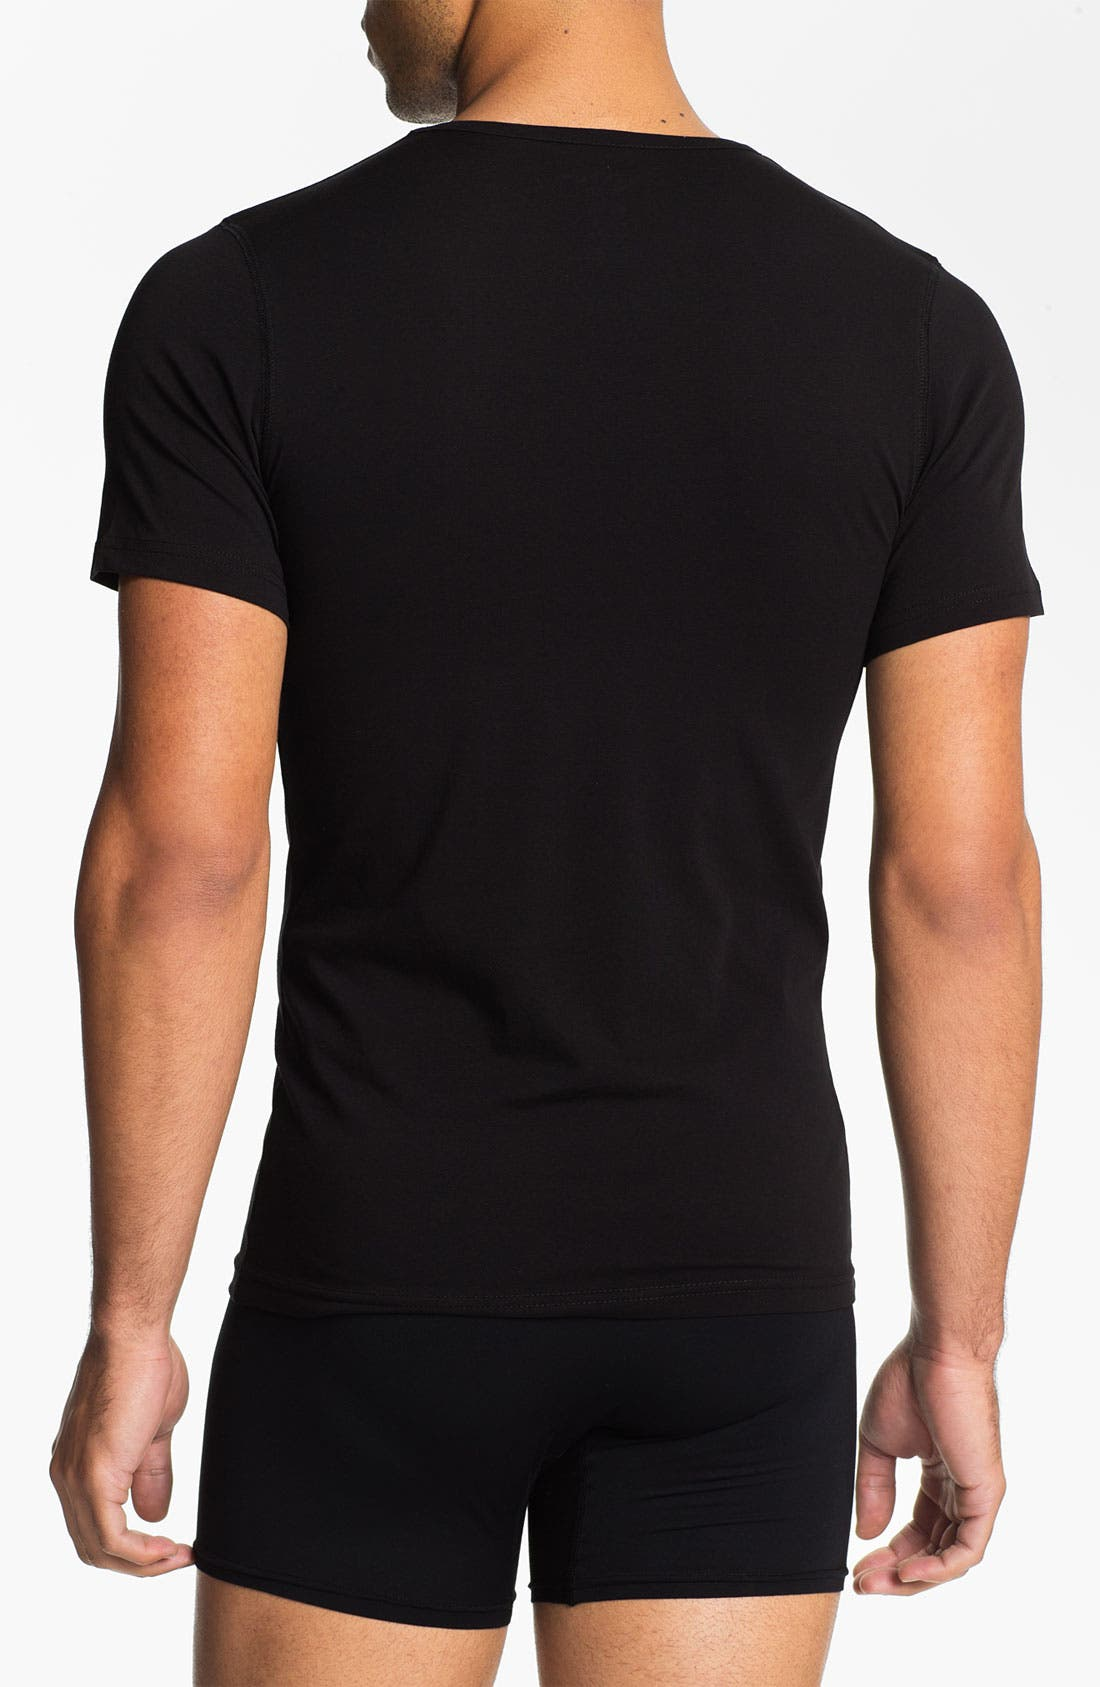 Alternate Image 2  - Naked Crewneck Cotton Undershirt